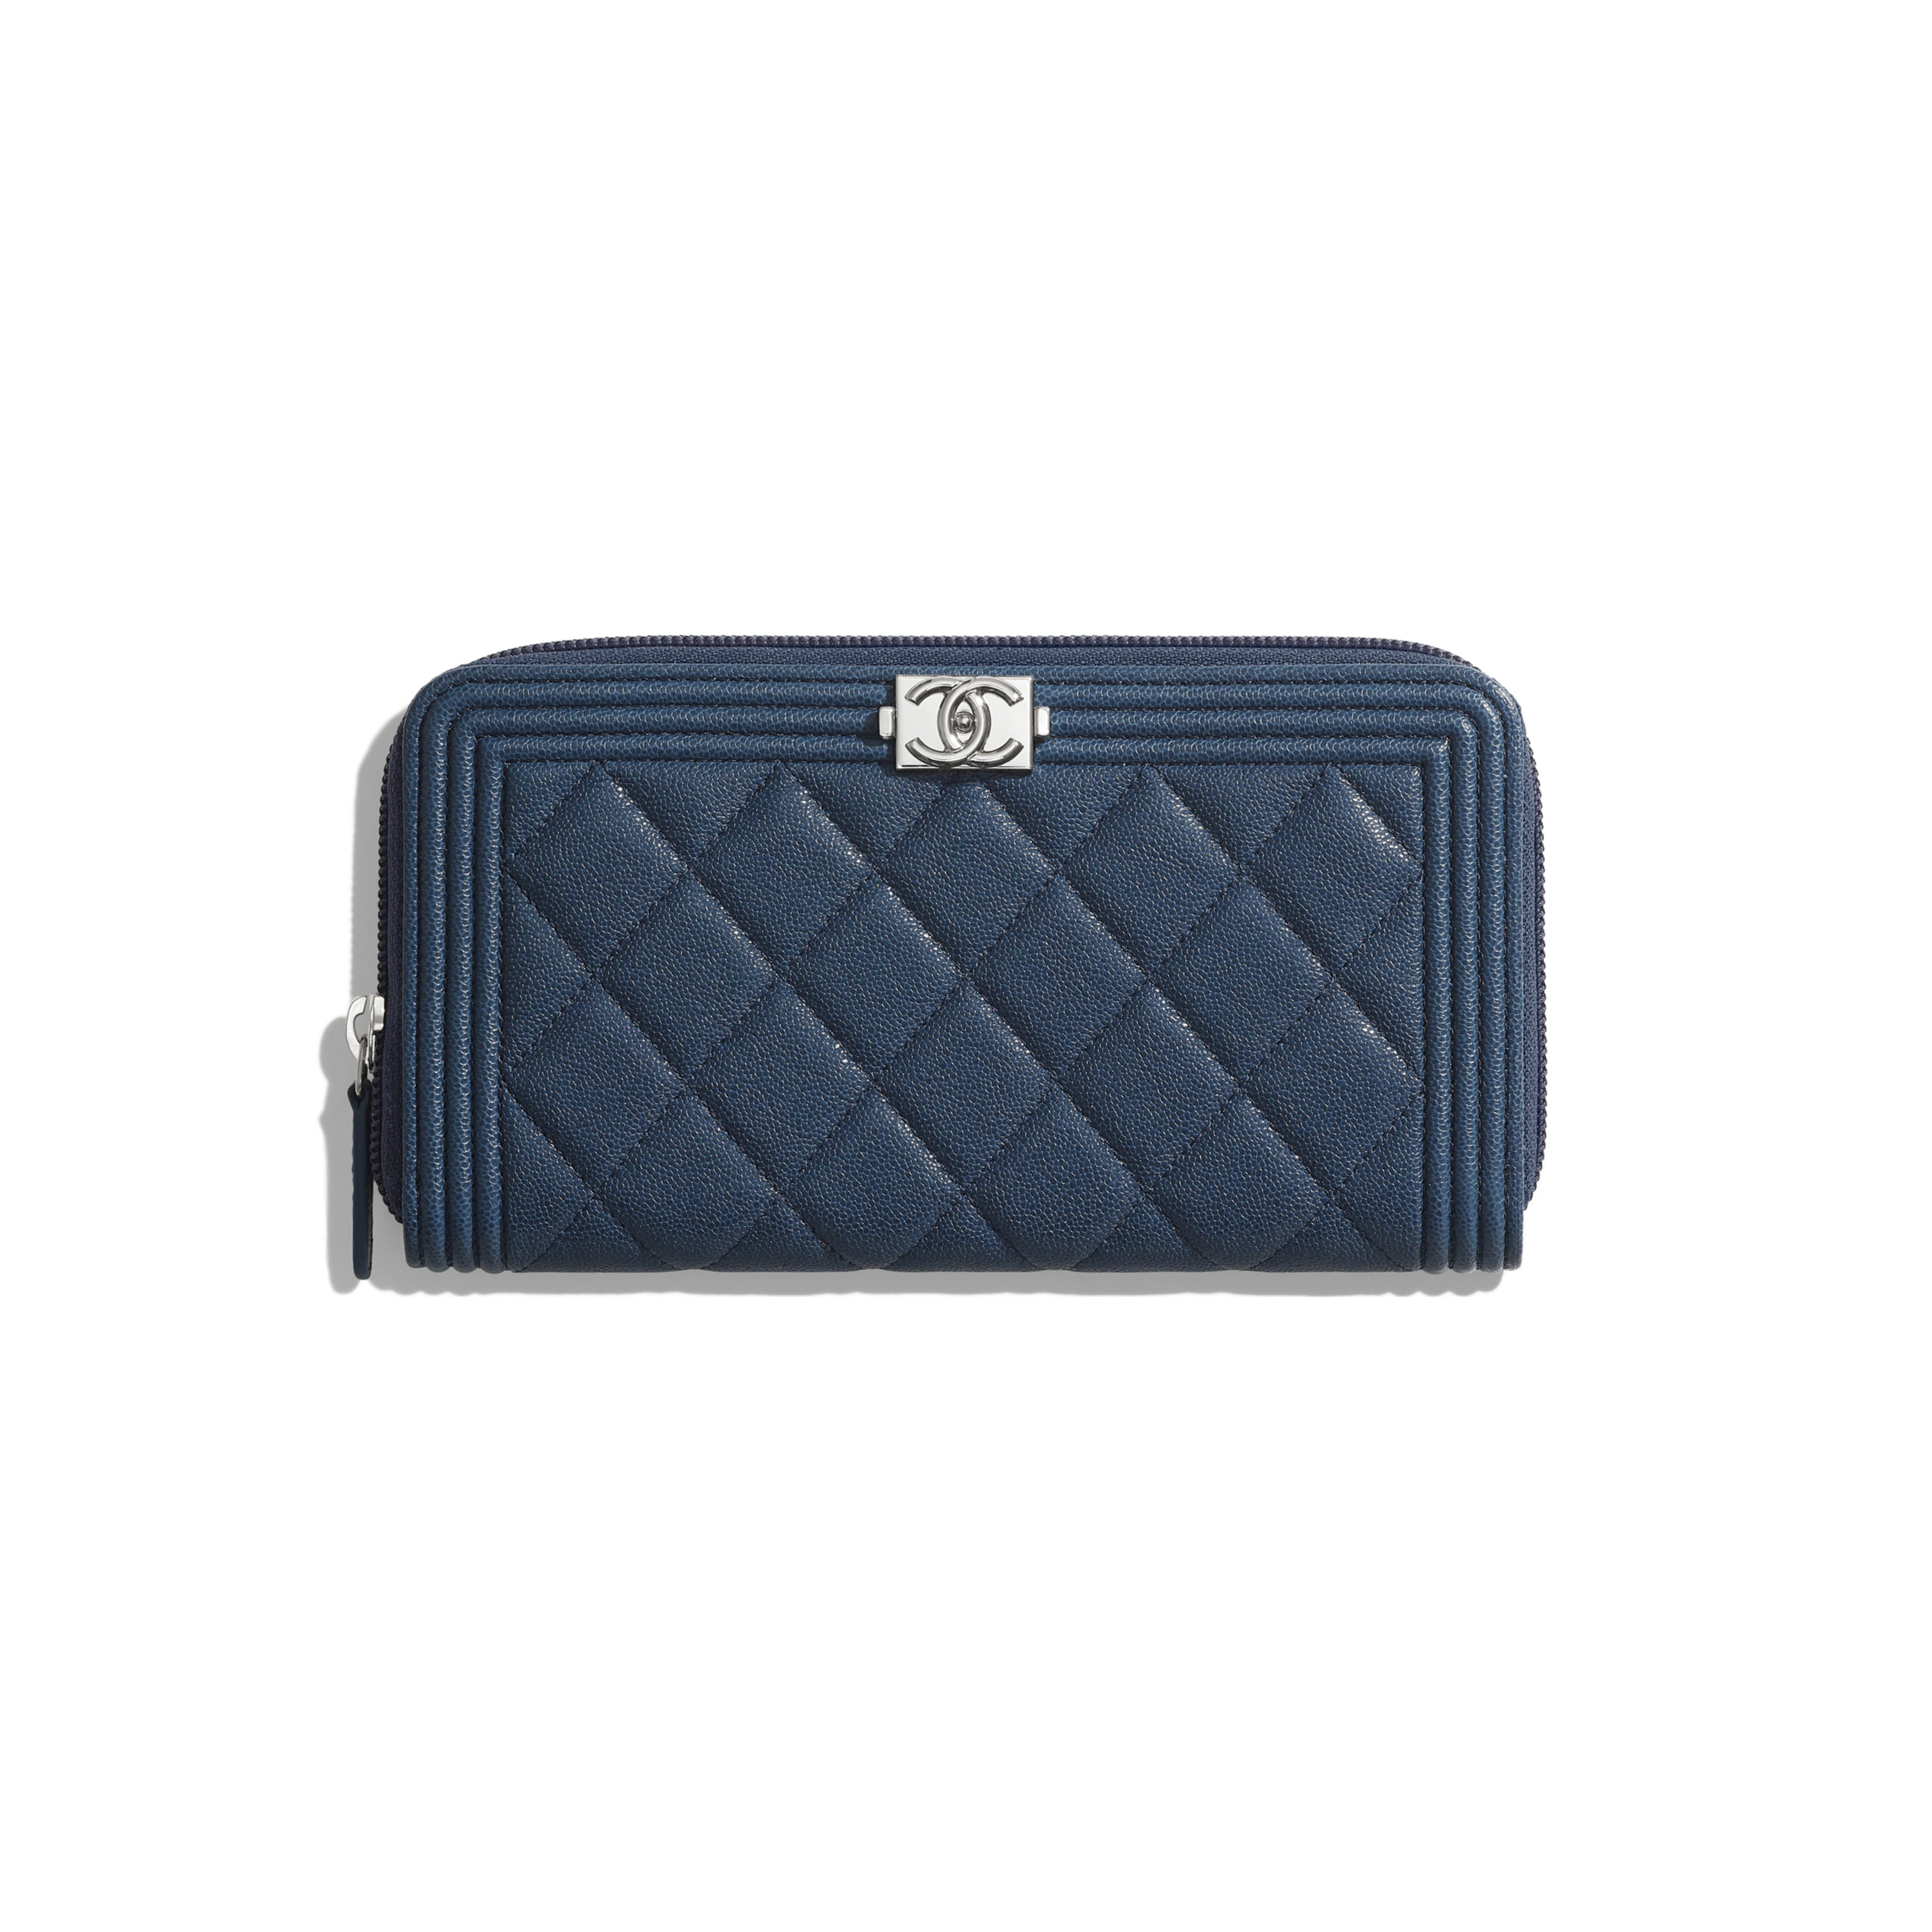 BOY CHANEL Long Zipped Wallet - Blue - Grained Calfskin & Silver Metal - Default view - see full sized version